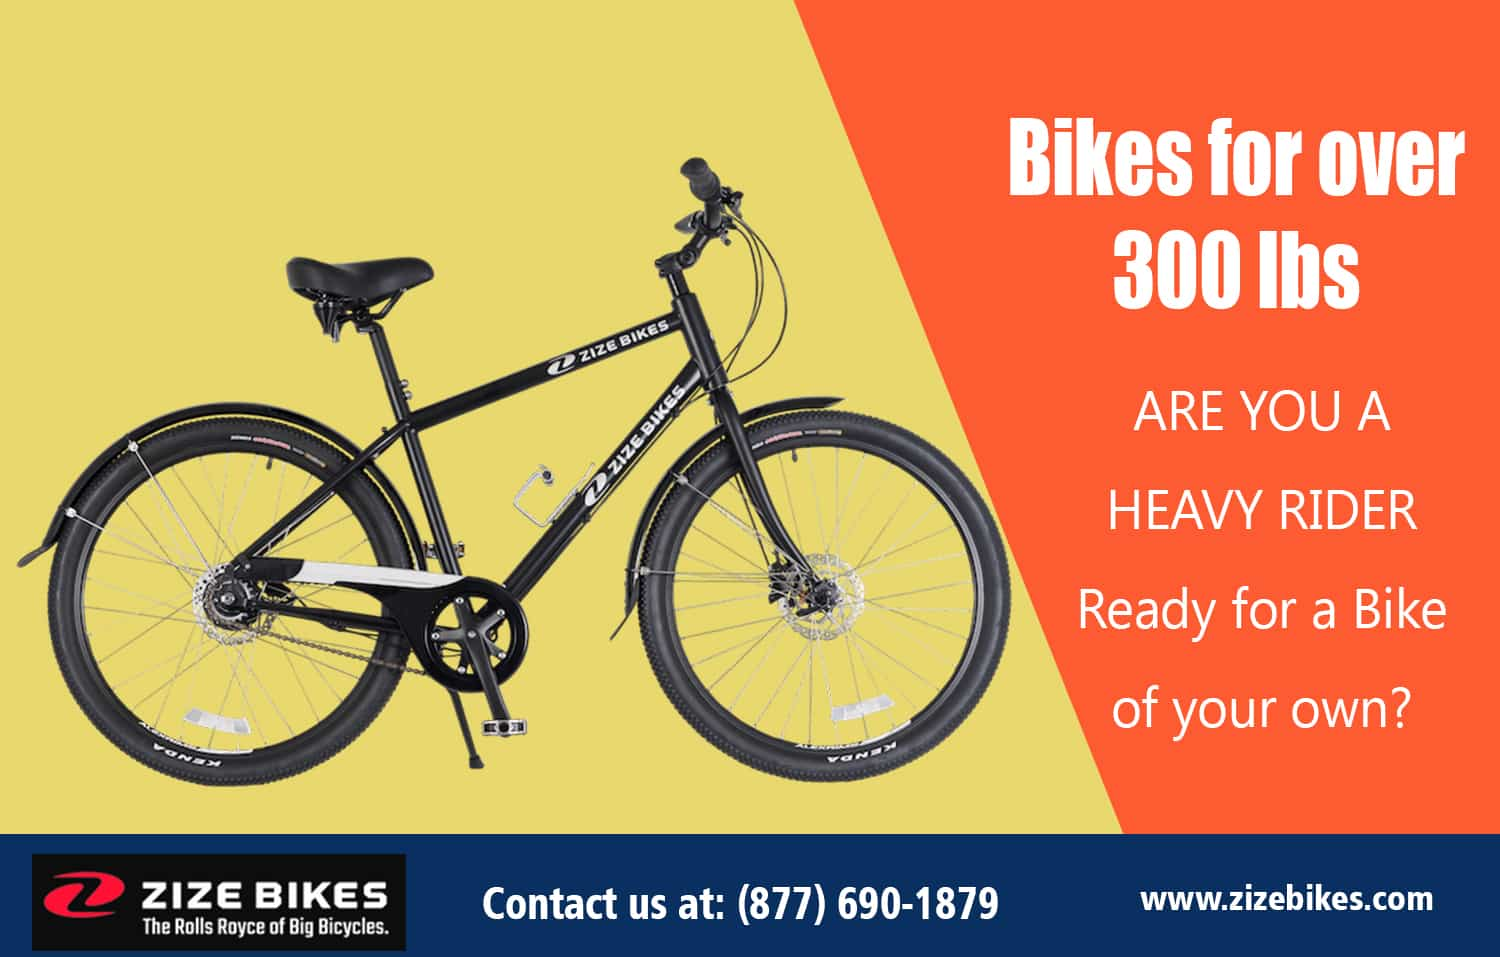 Bikes for over 300 lbs